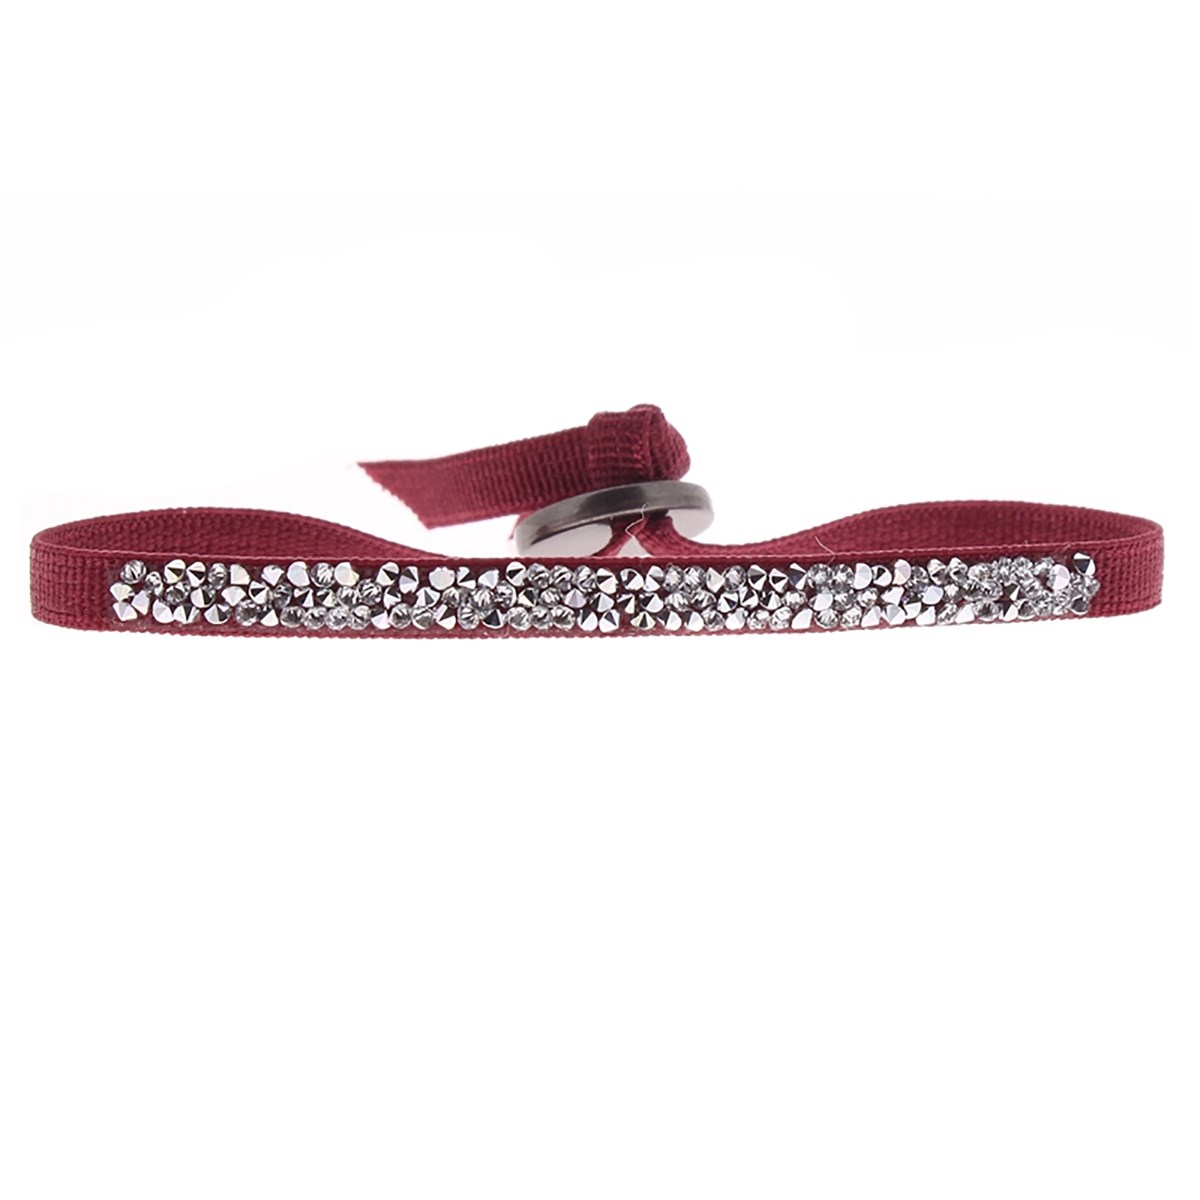 Bracelet Les Interchangeables Ultra Fine Rocks bordeaux